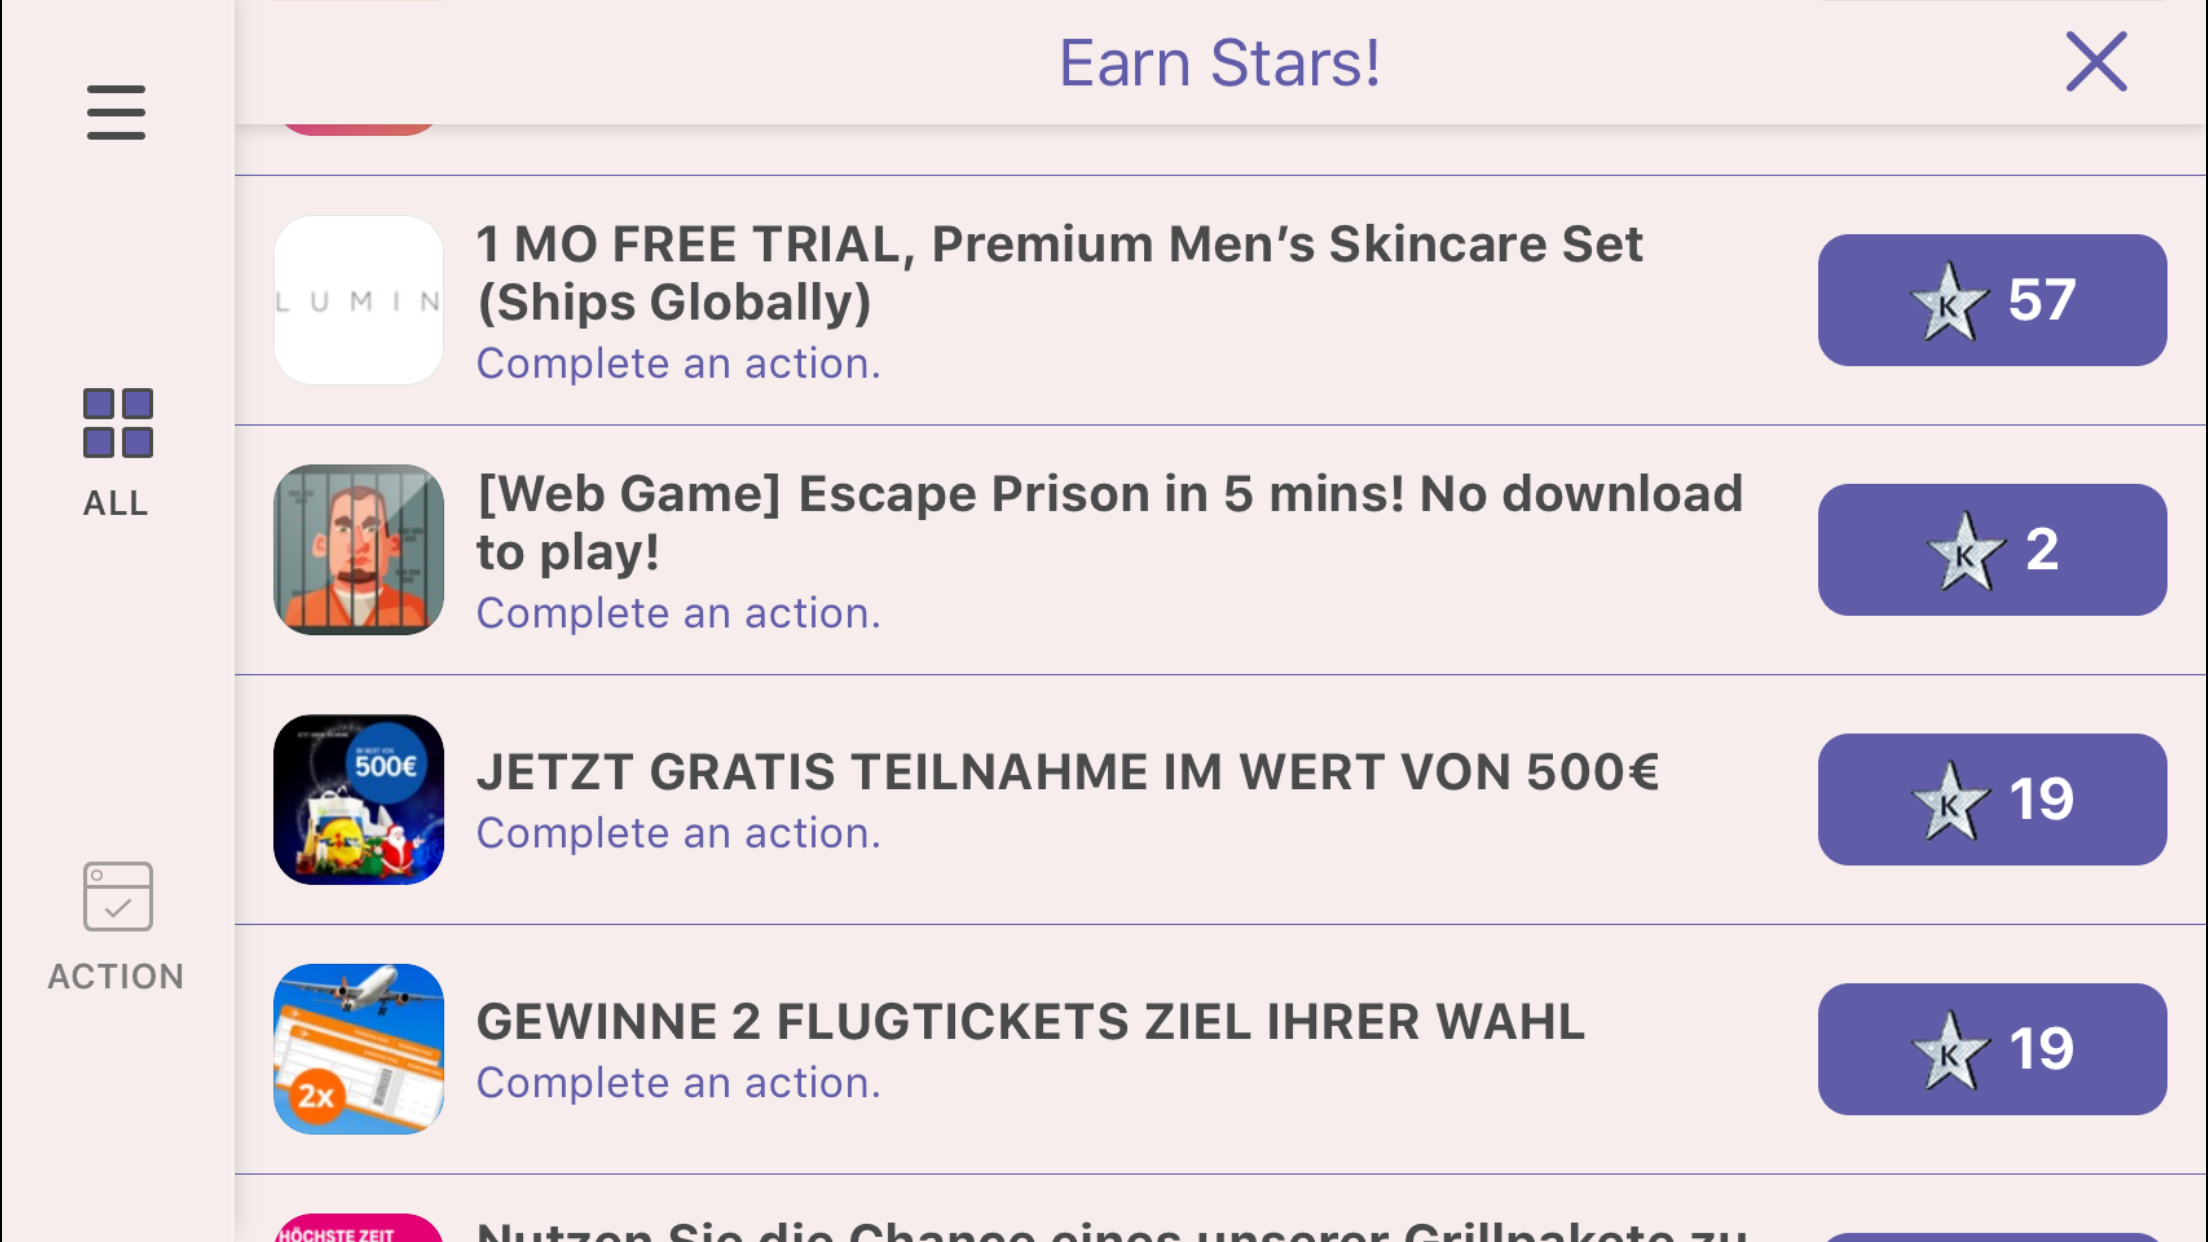 Tapjoy Lumin Offer — Glu Communities